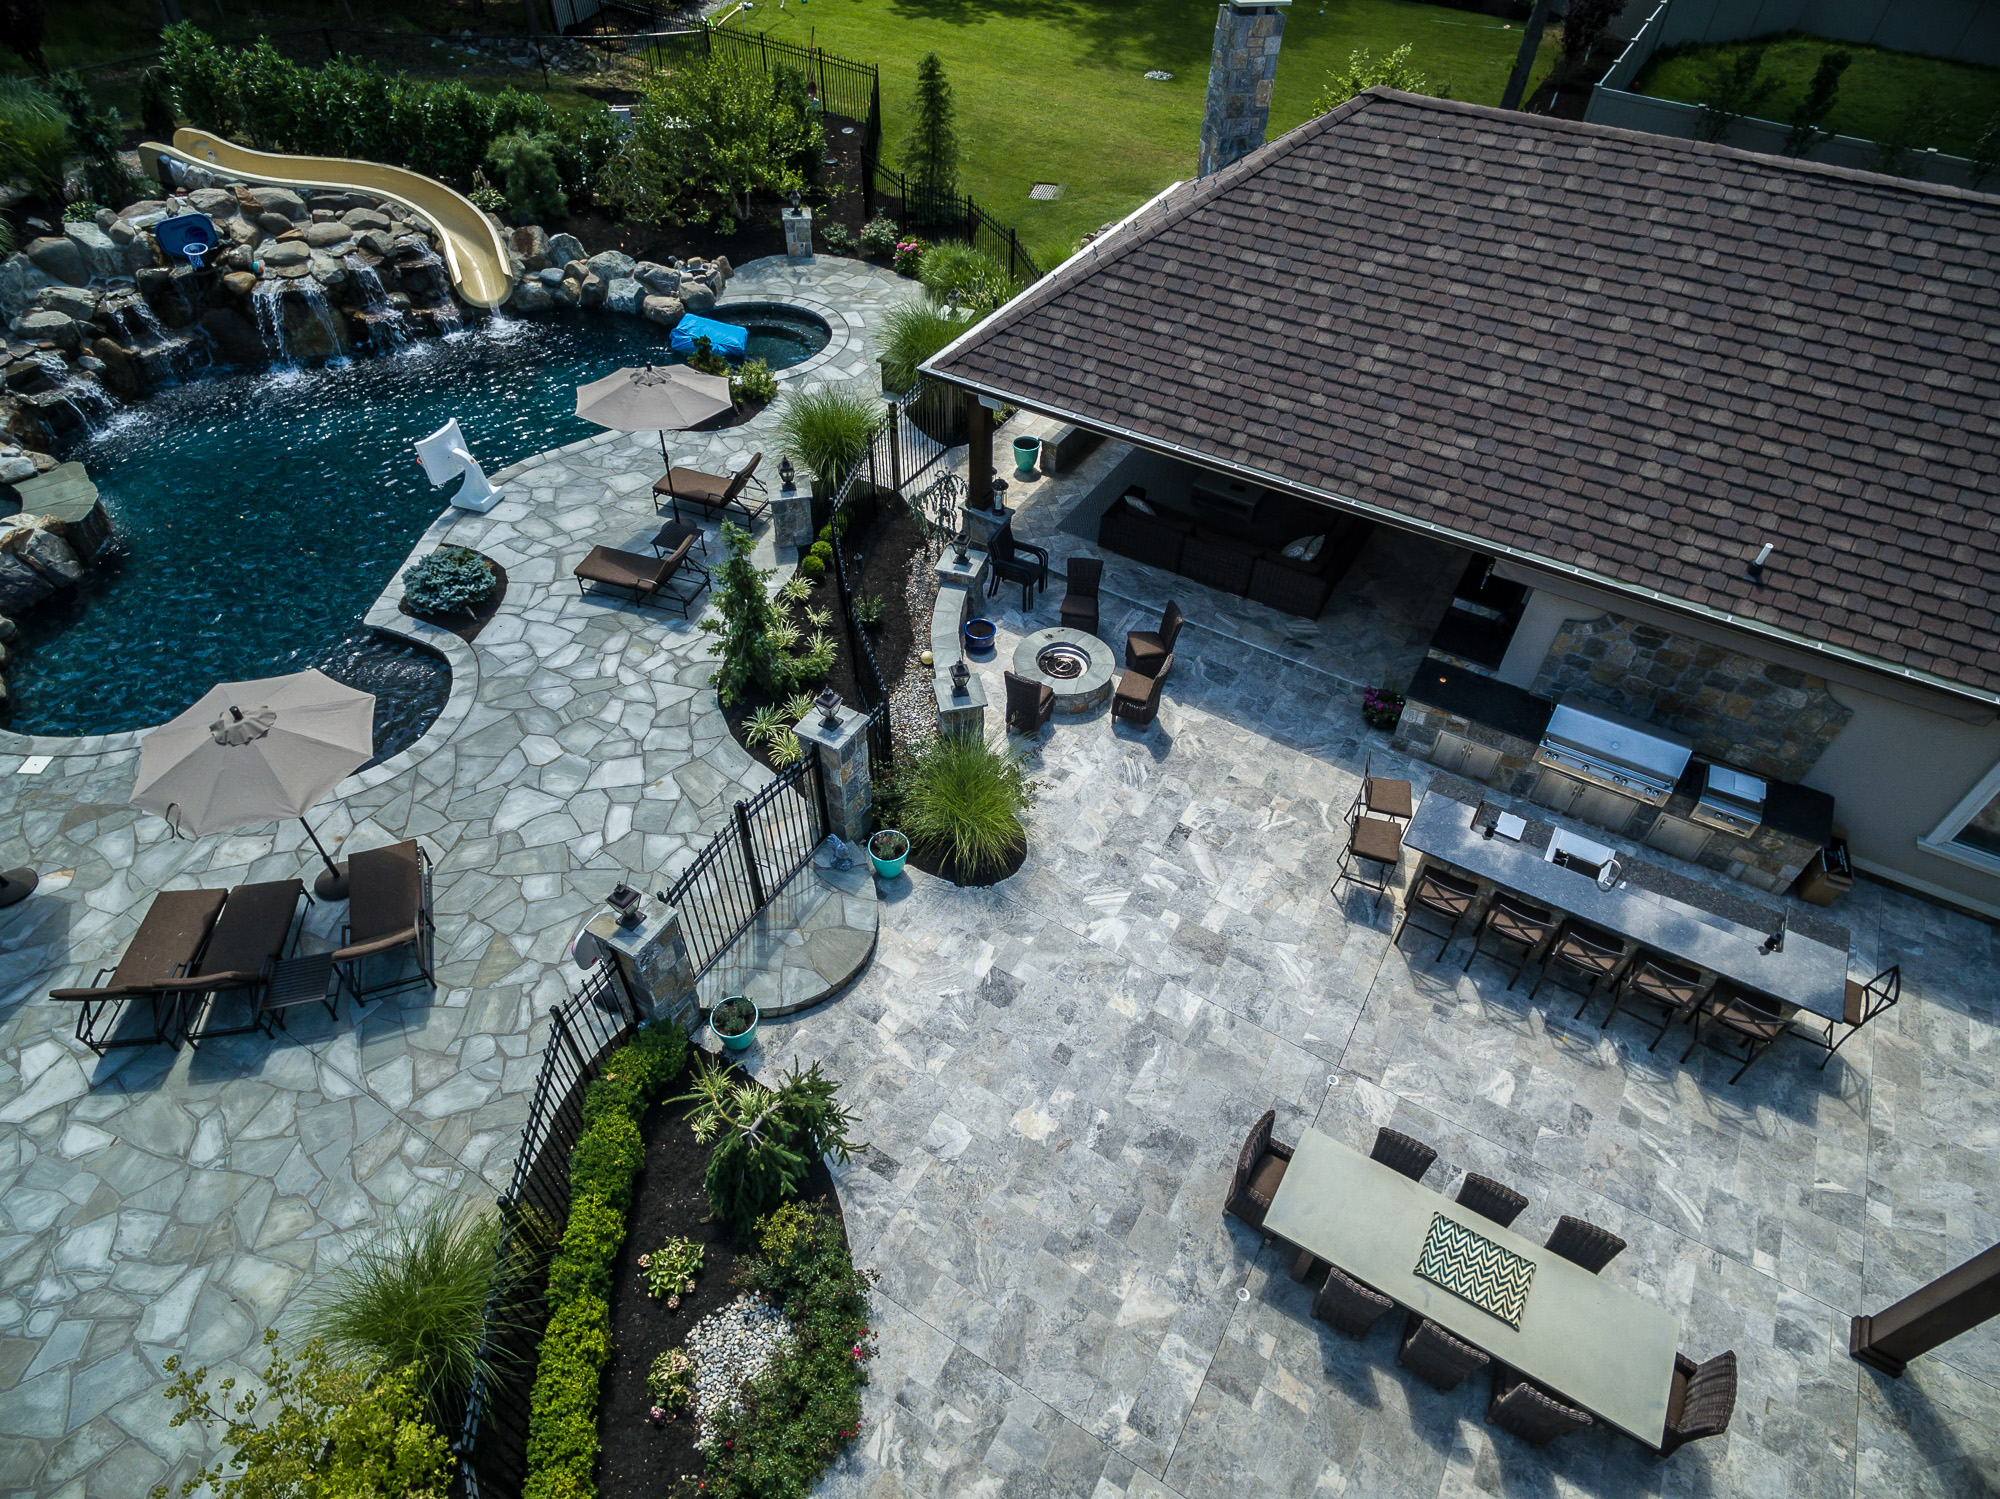 Pools By Design glass wall infinity edge Inground Pools Livingston Nj Pools By Design New Jersey